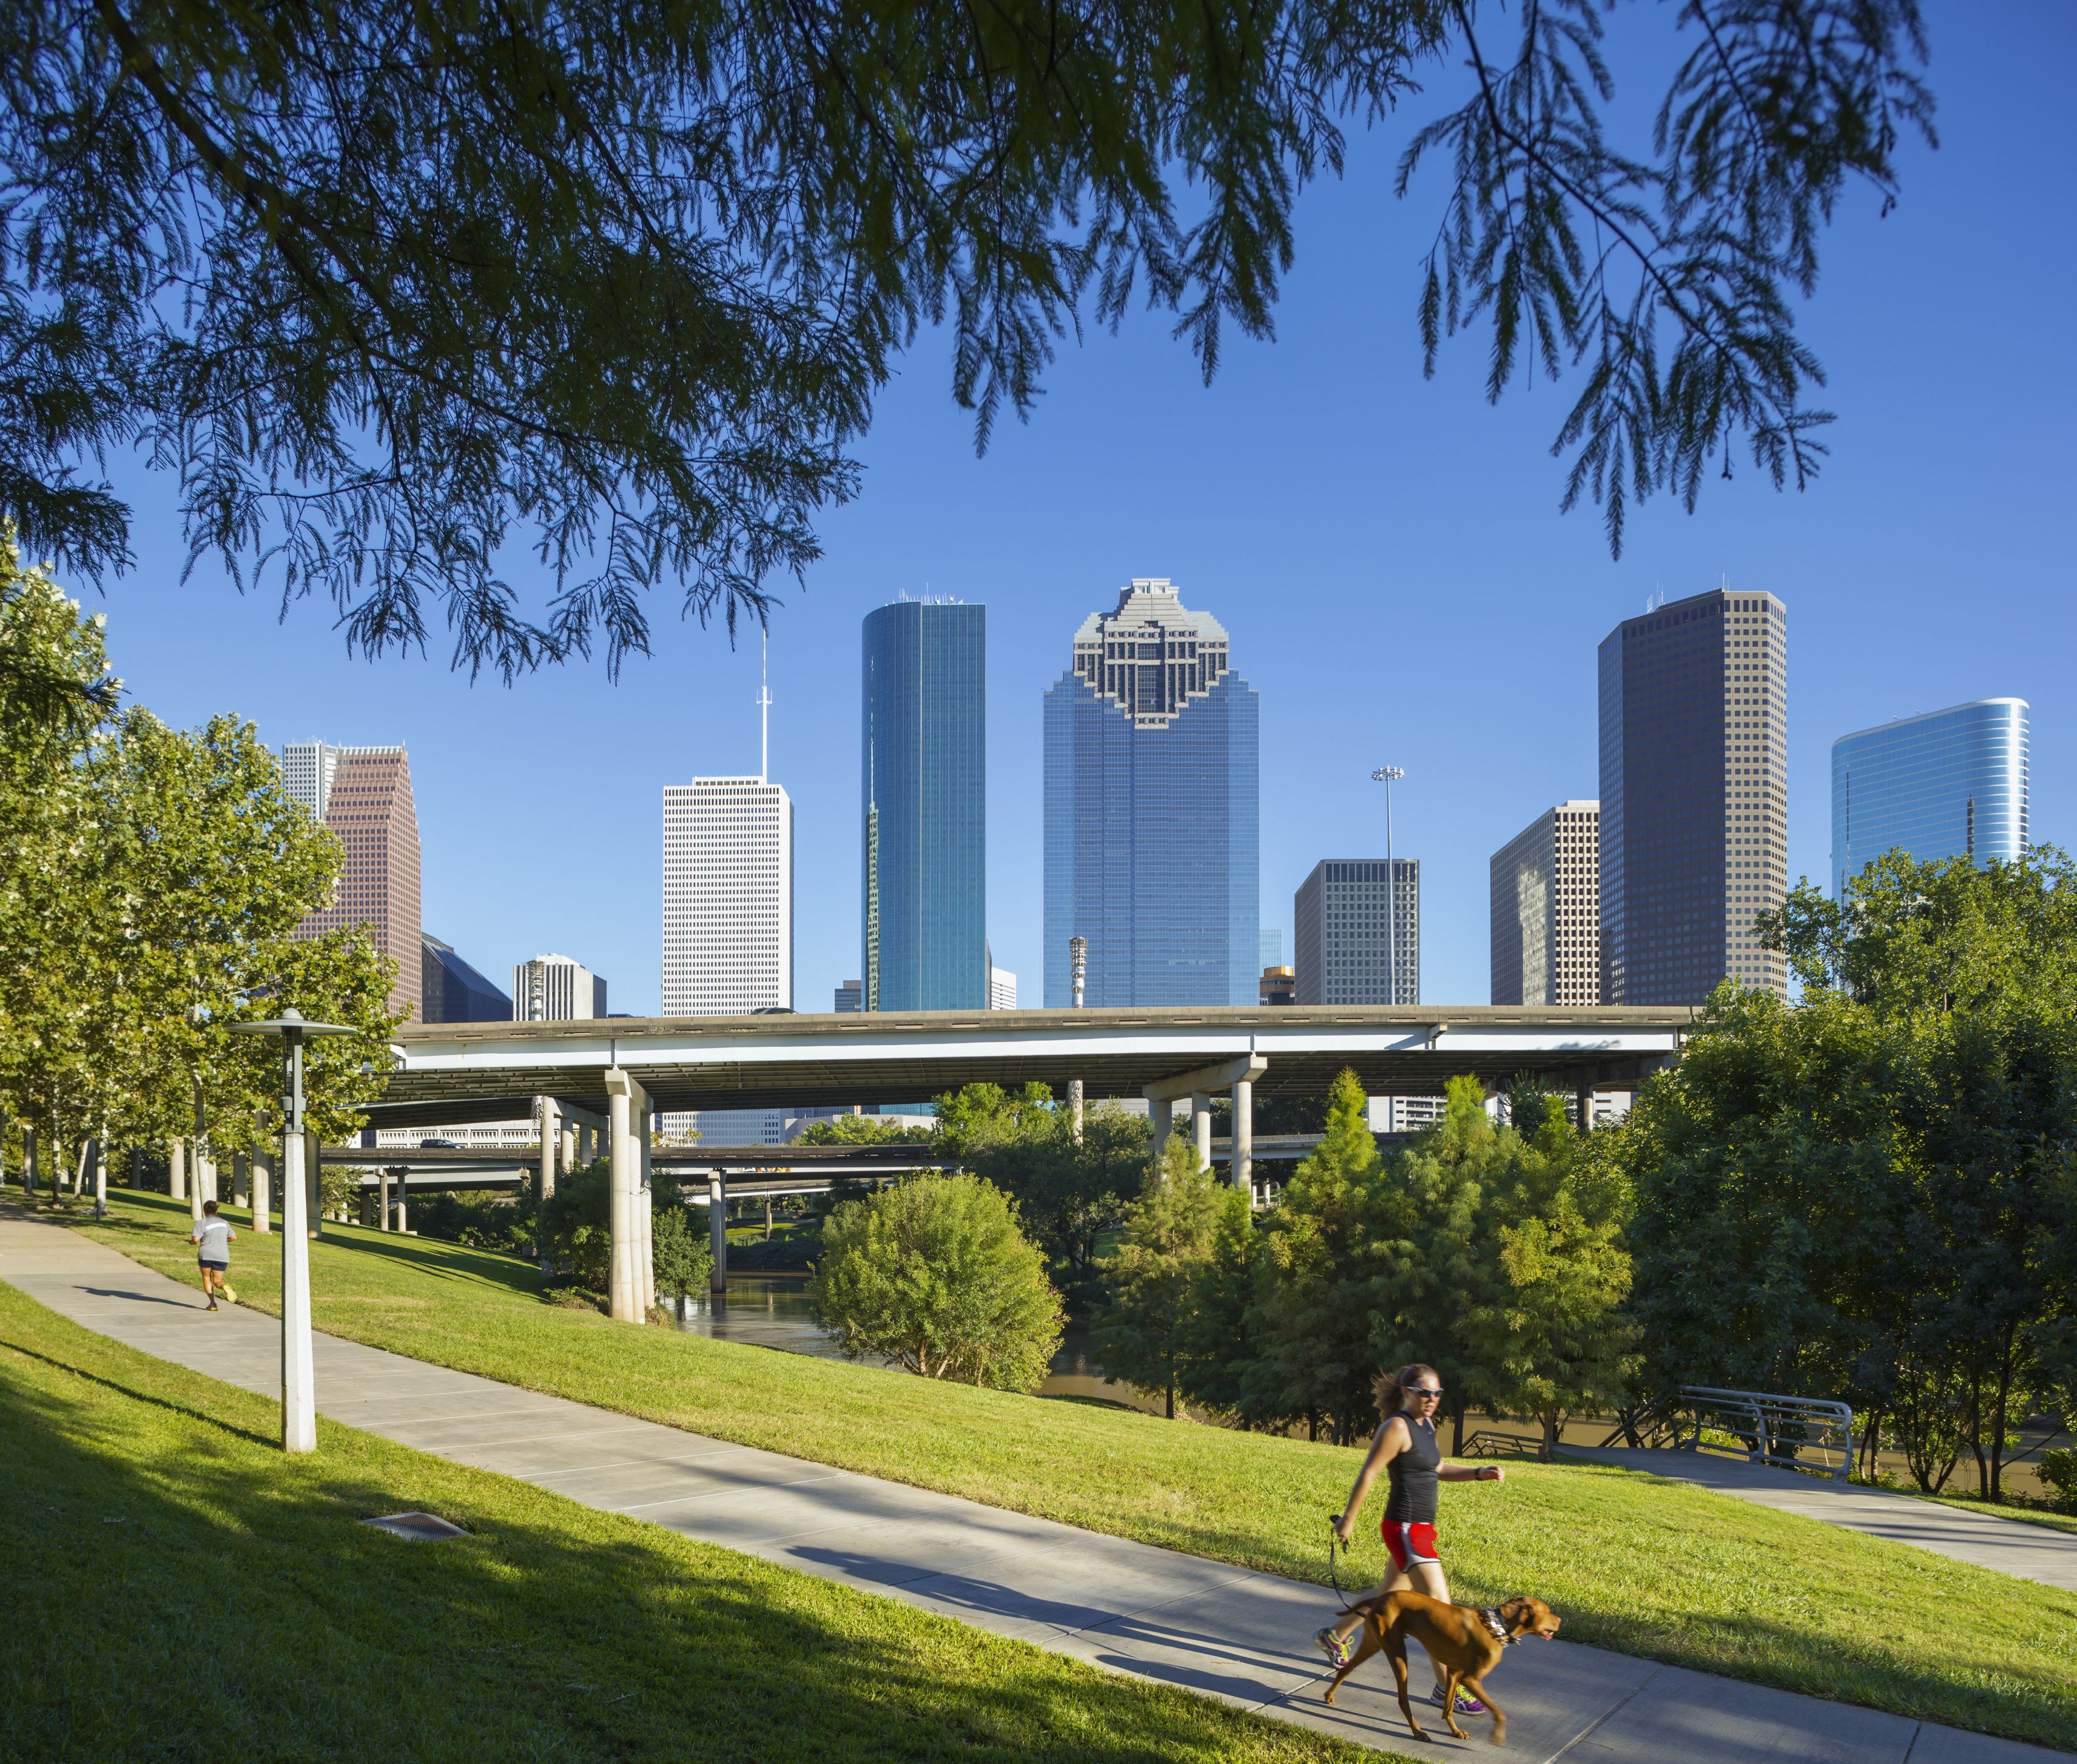 Top 10 Places Visit Houston: 10 Best Attractions And Things To Do In Houston